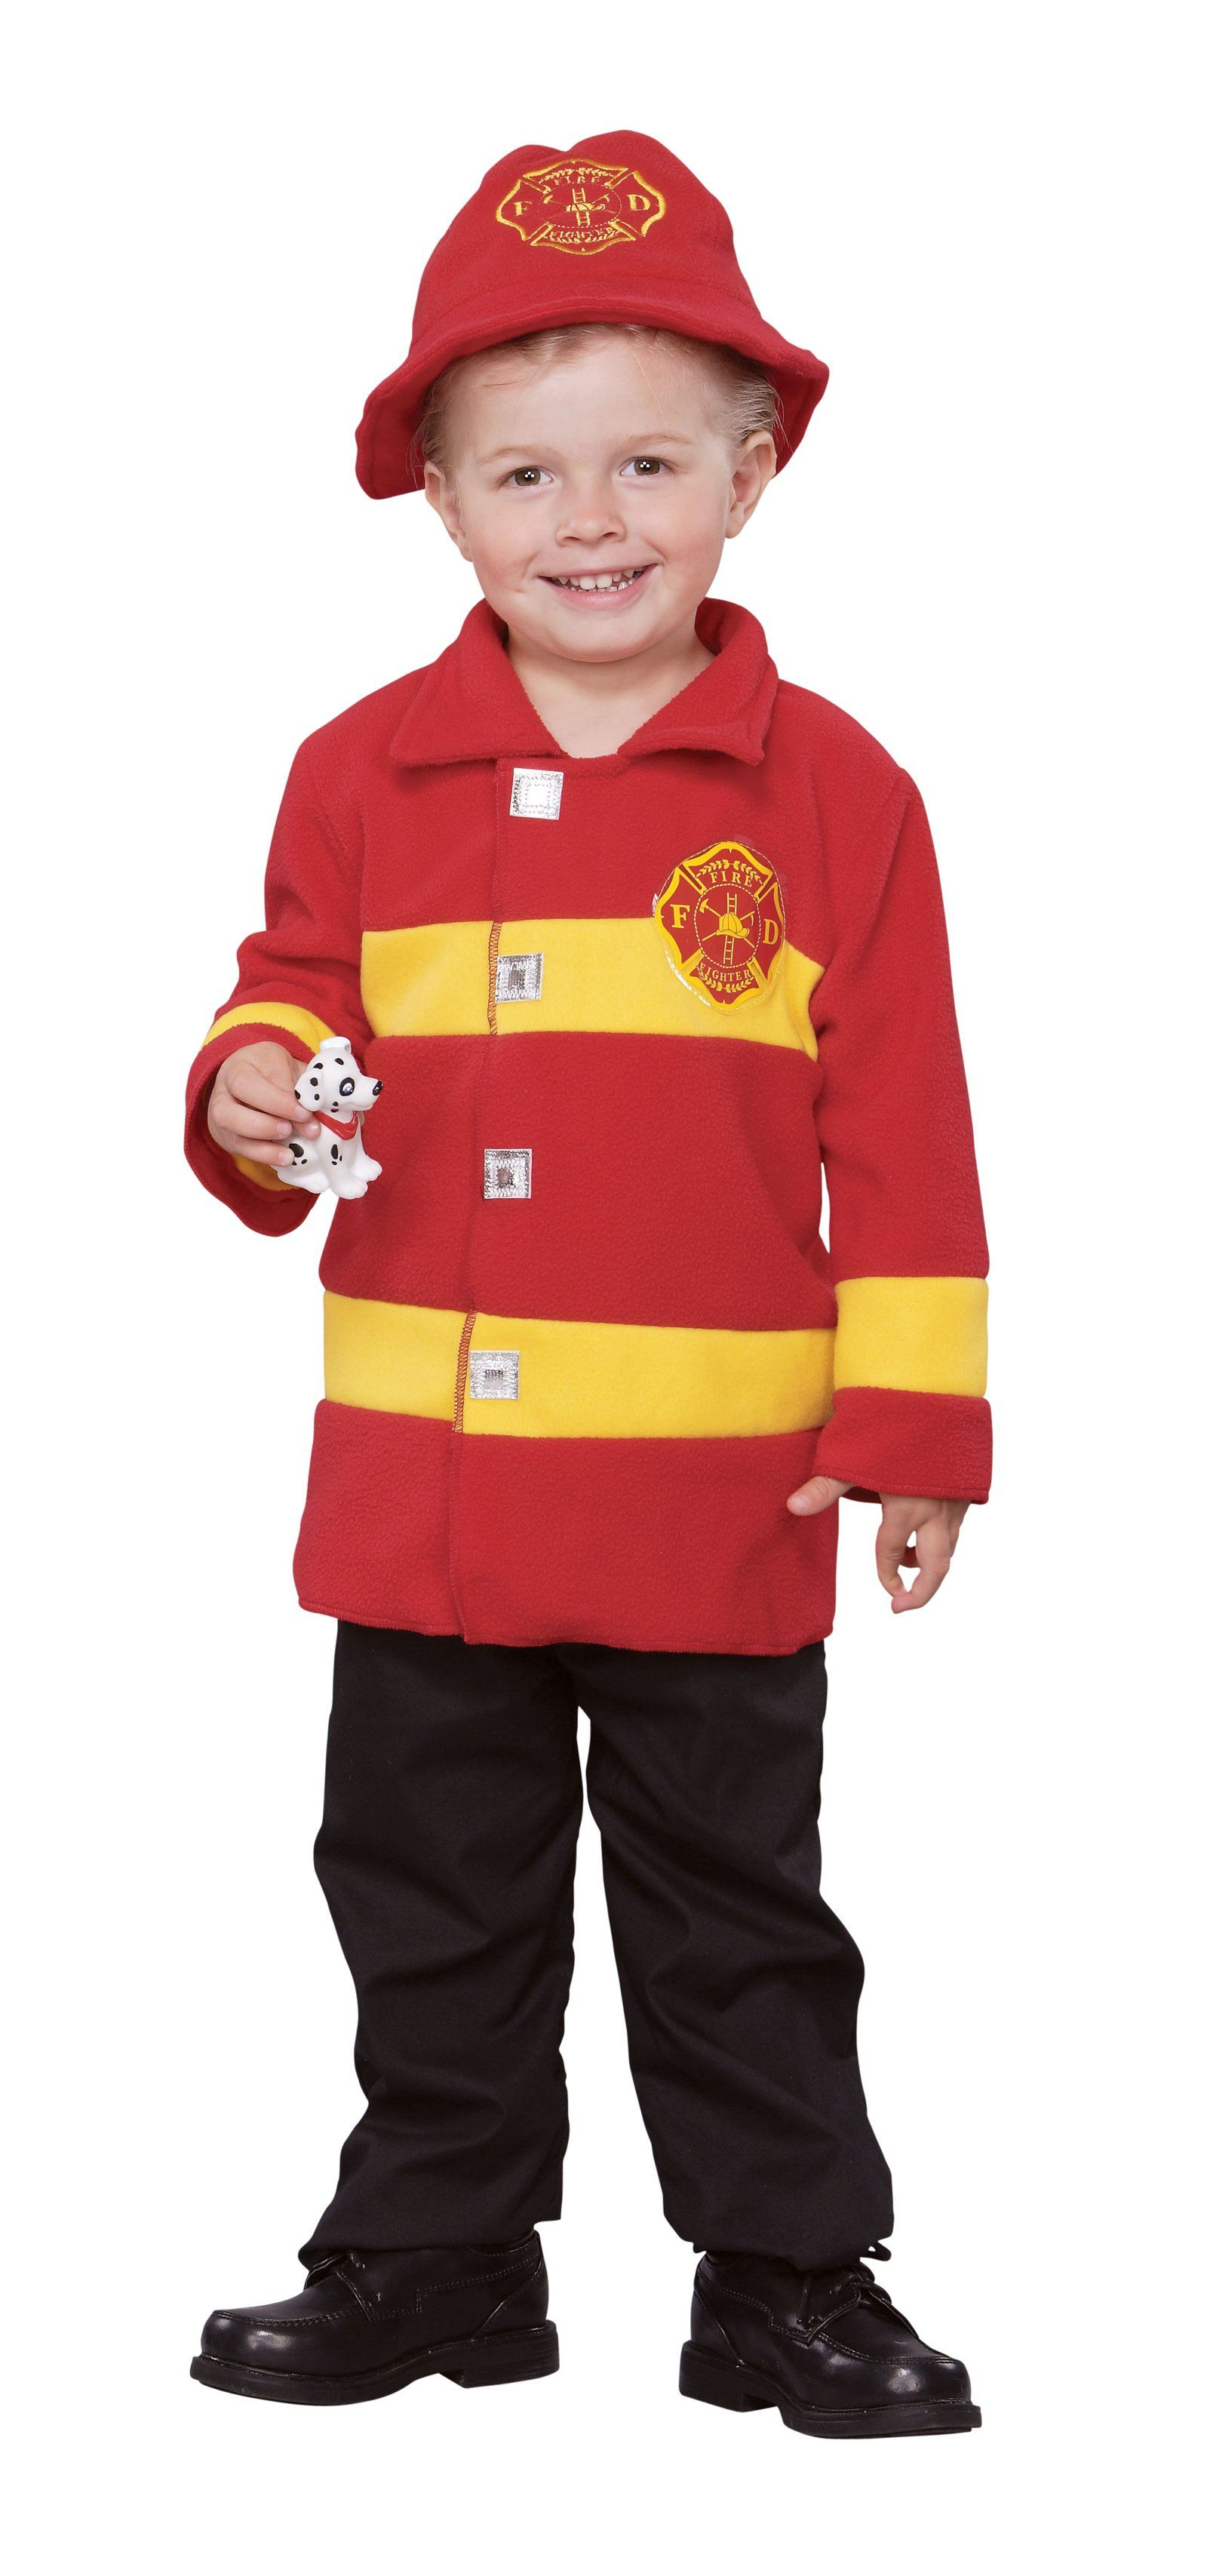 firefighter-toddler-costume | Holiday | Pinterest | Toddler costumes